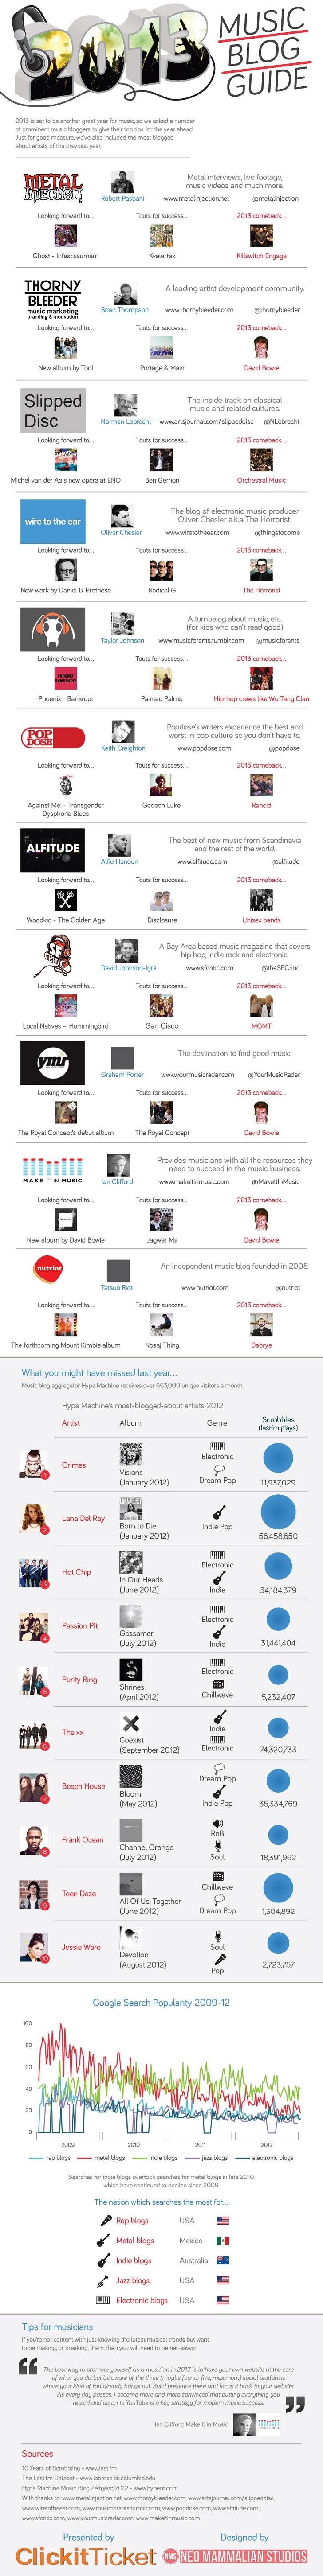 Top Music Blogs 2013-Infographic